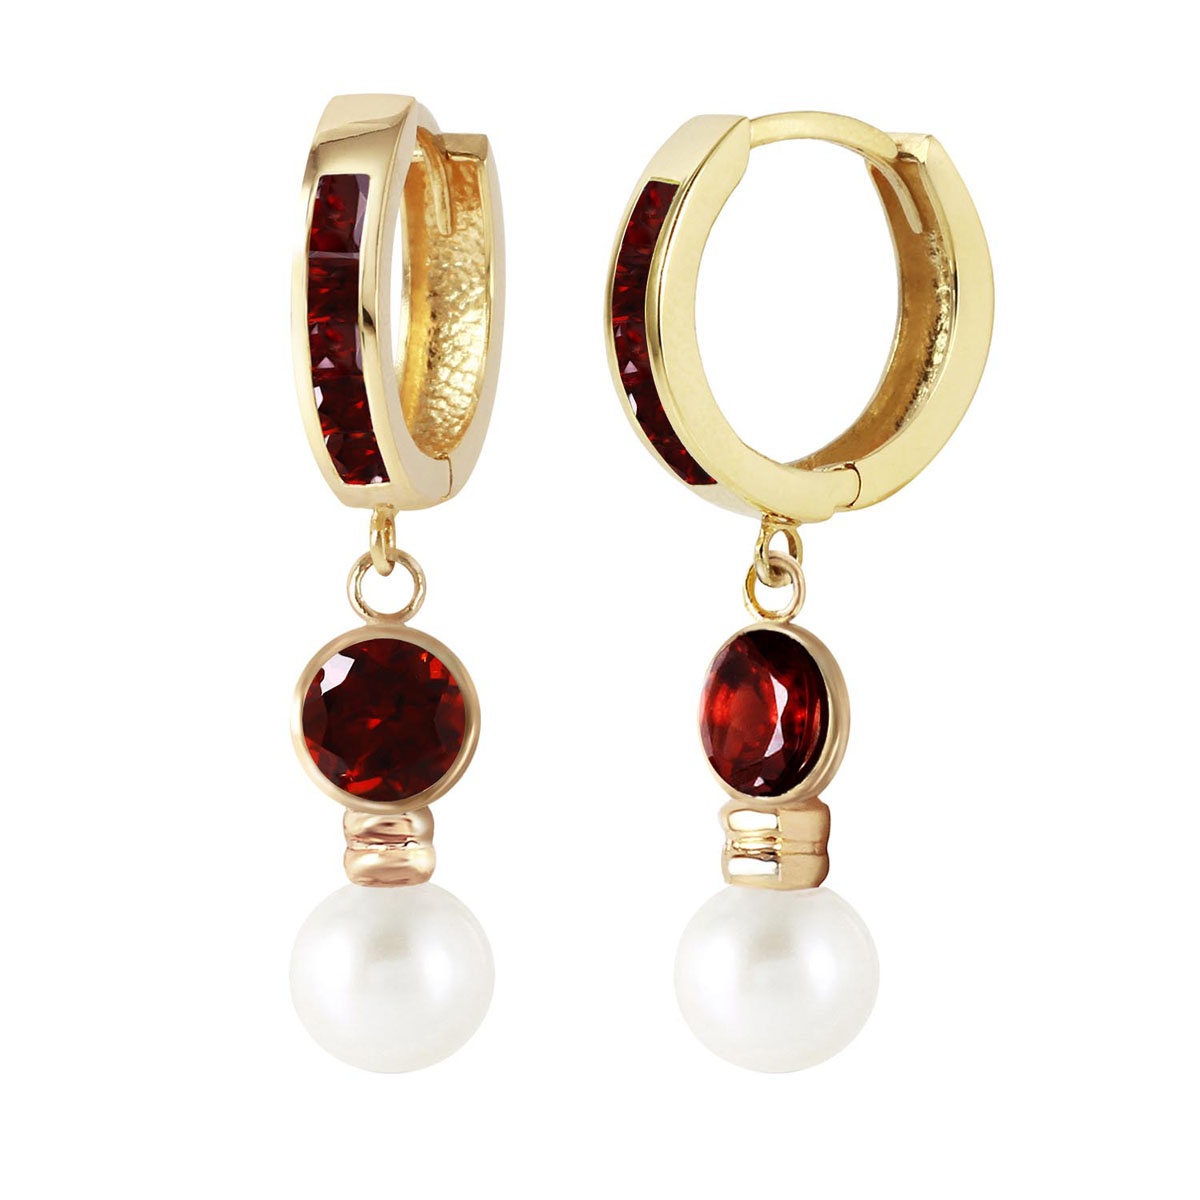 Garnet & Pearl Huggie Earrings in 9ct Gold